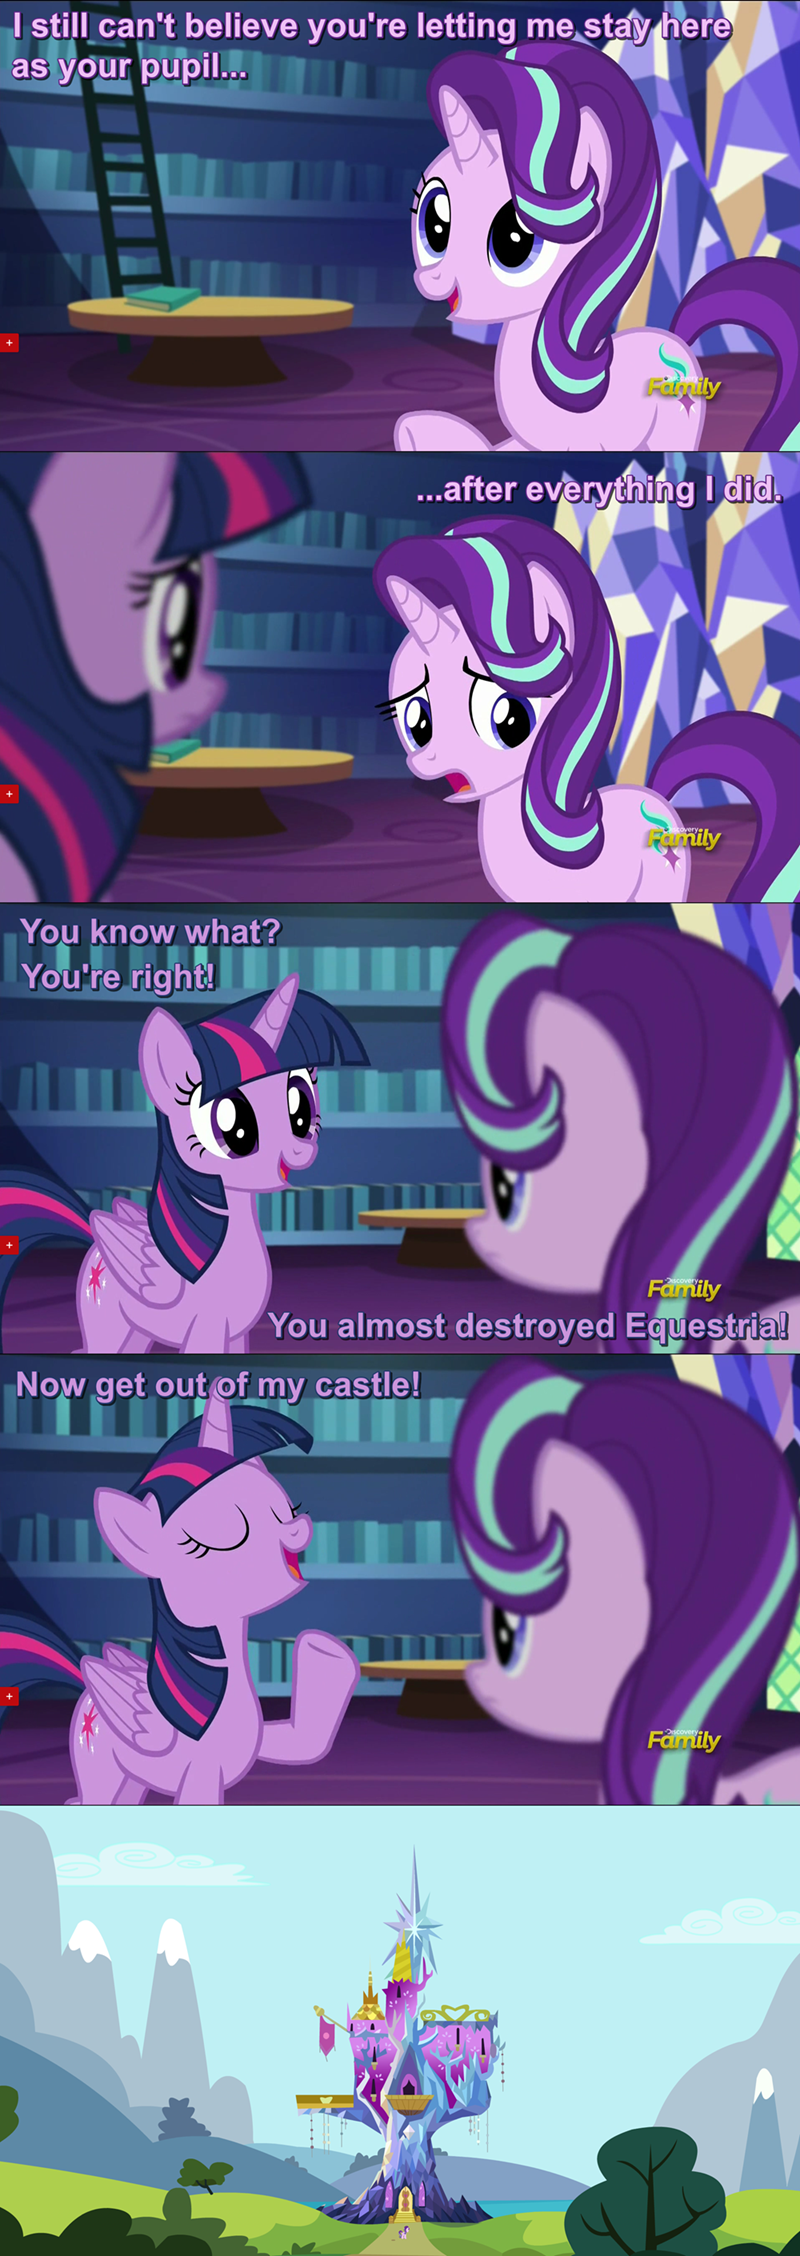 starlight glimmer twilight sparkle the crystalling comic - 8763780608